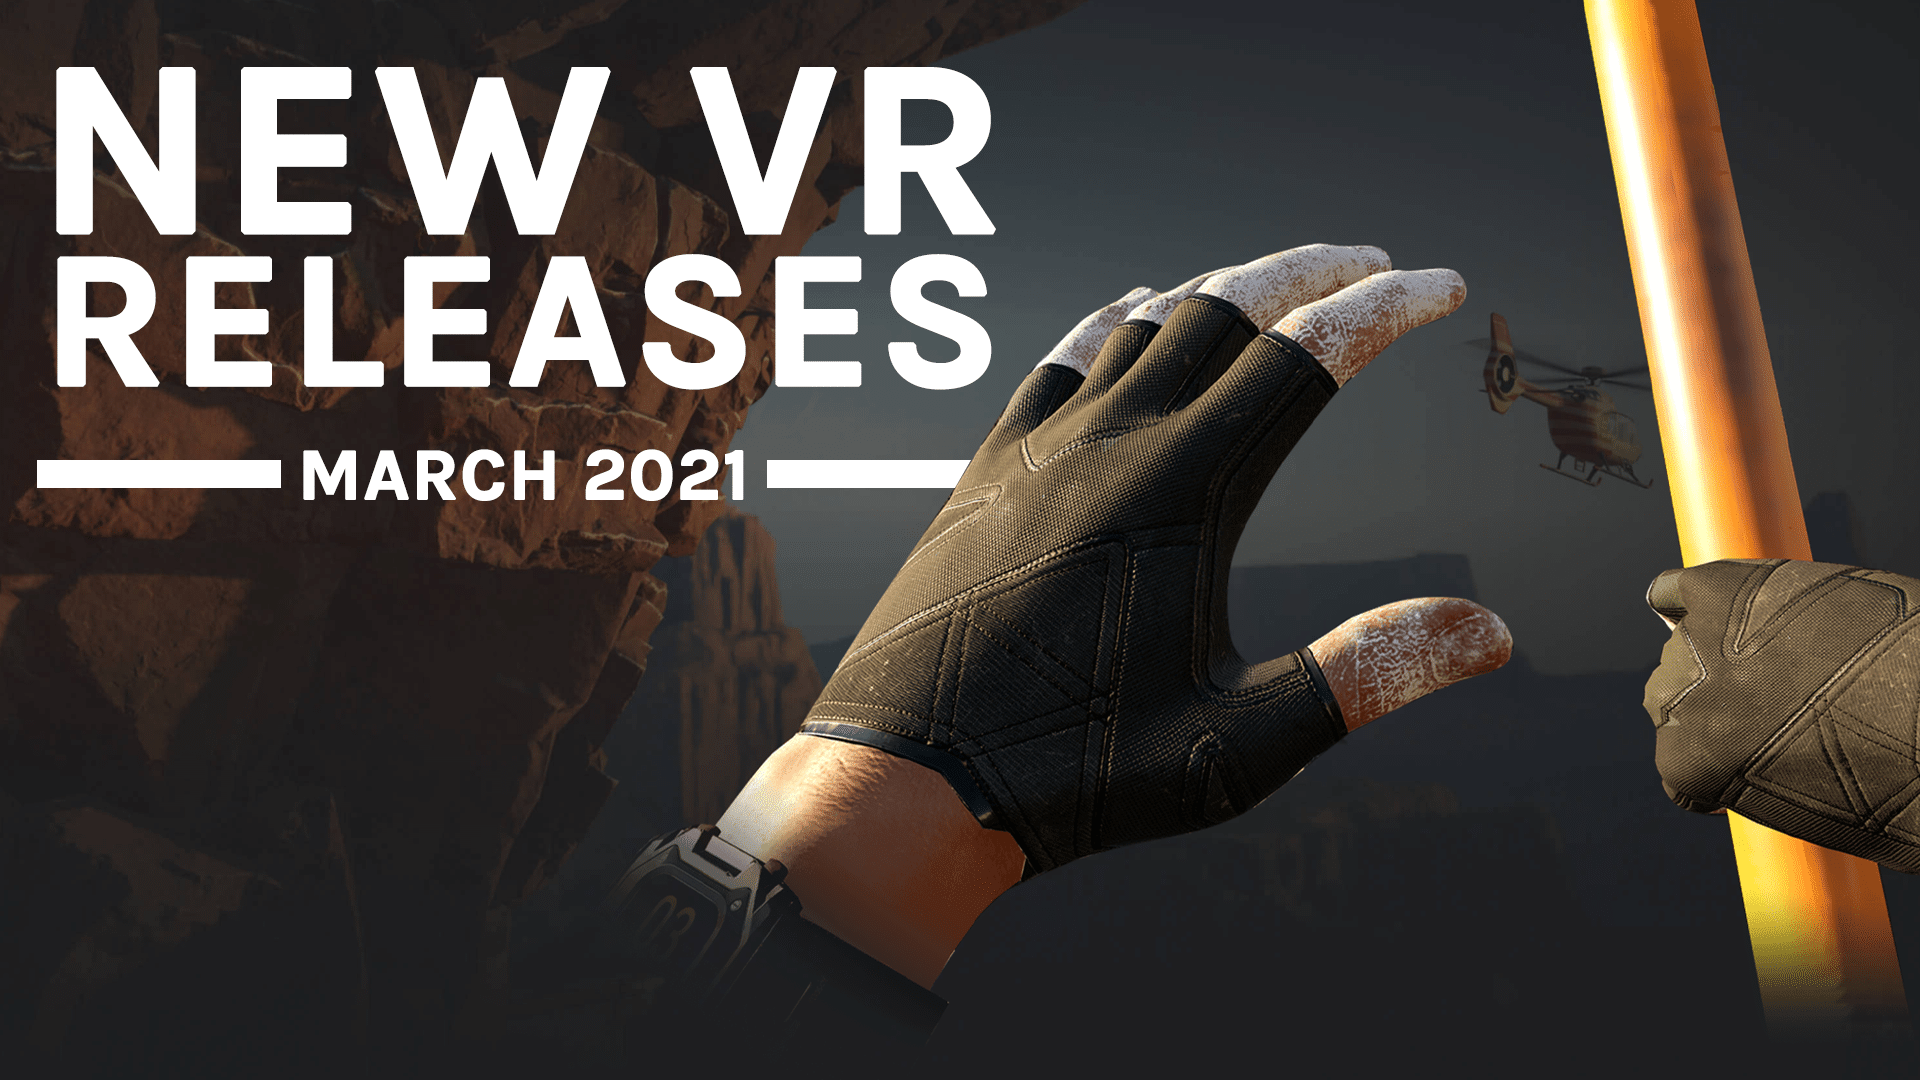 New vr games March 2021